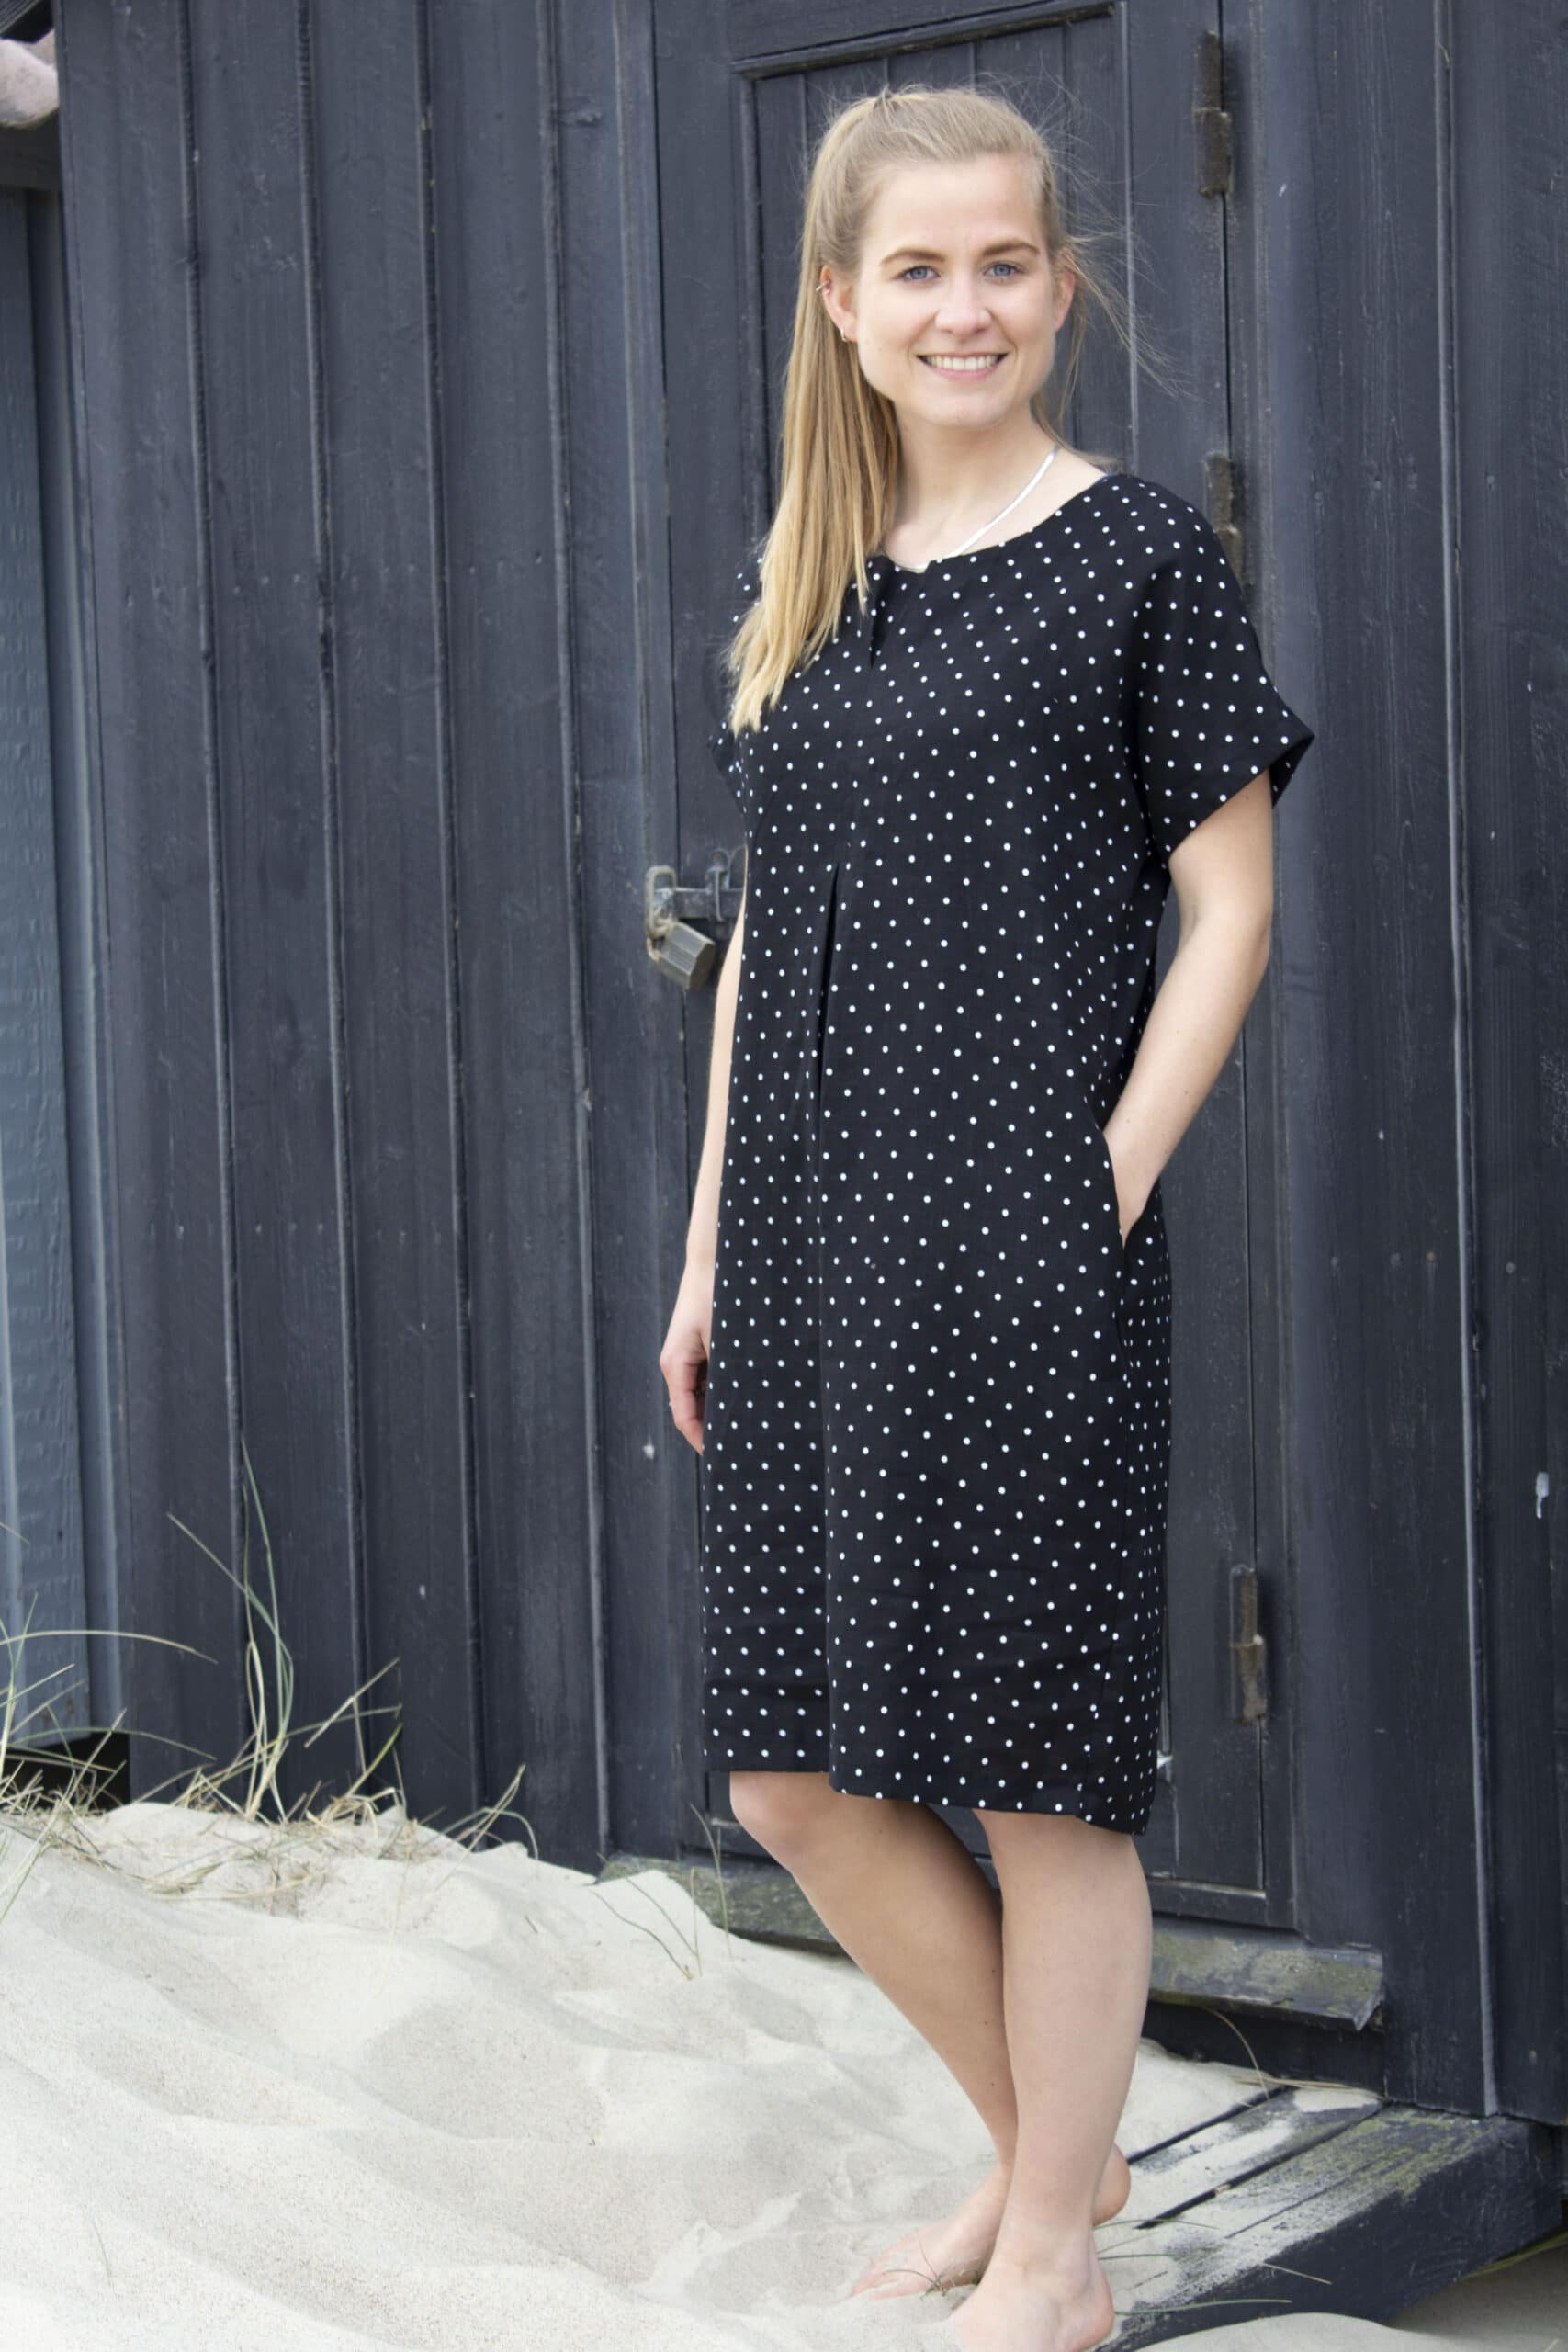 Woman in black dress with white dots